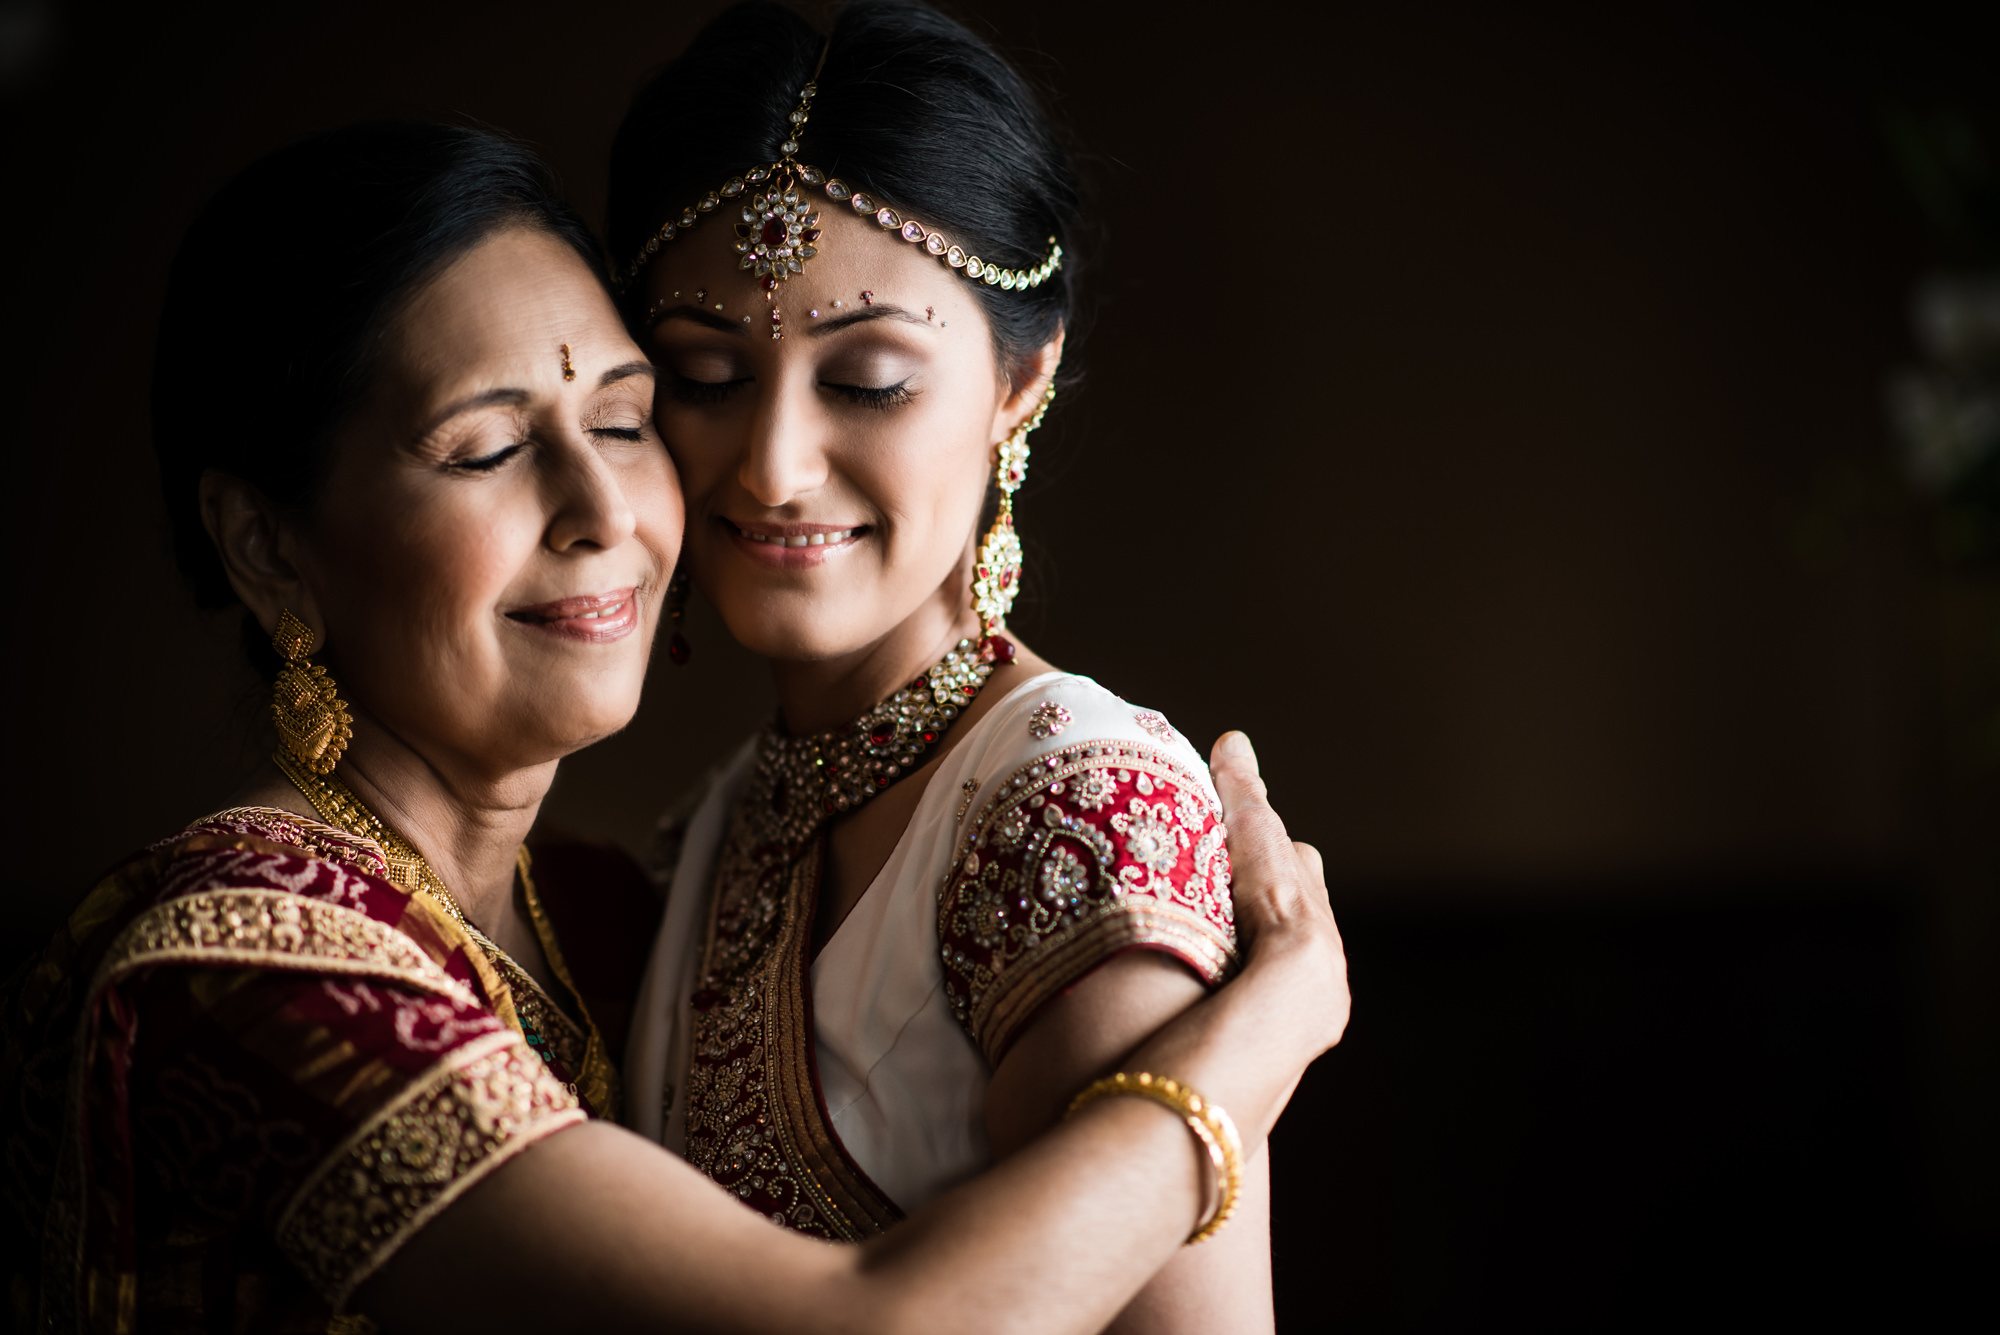 Indian mother and bride embrace photo by Cliff Mautner